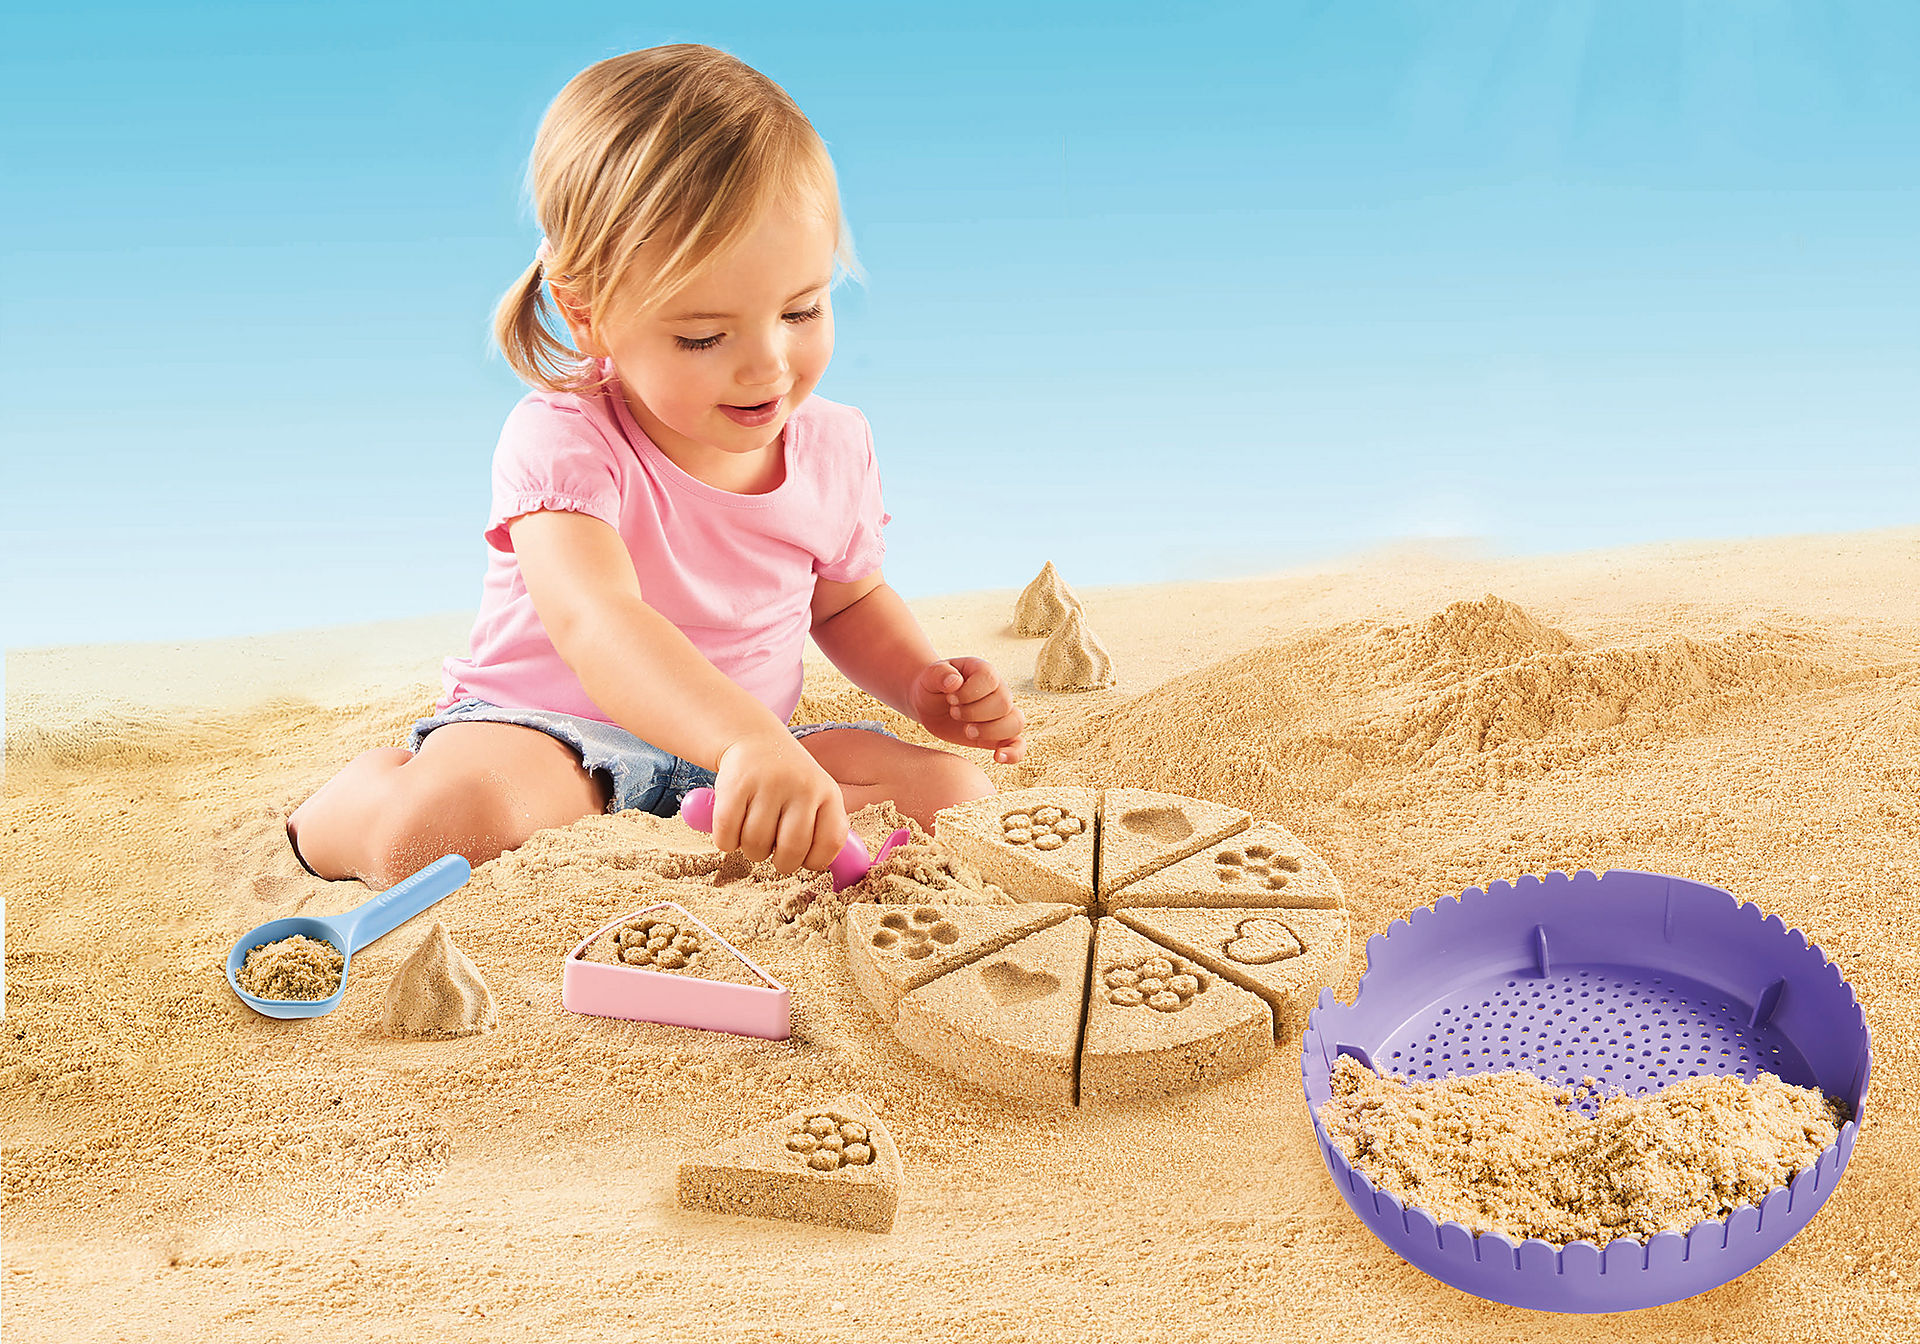 70339 Bakery Sand Bucket zoom image6